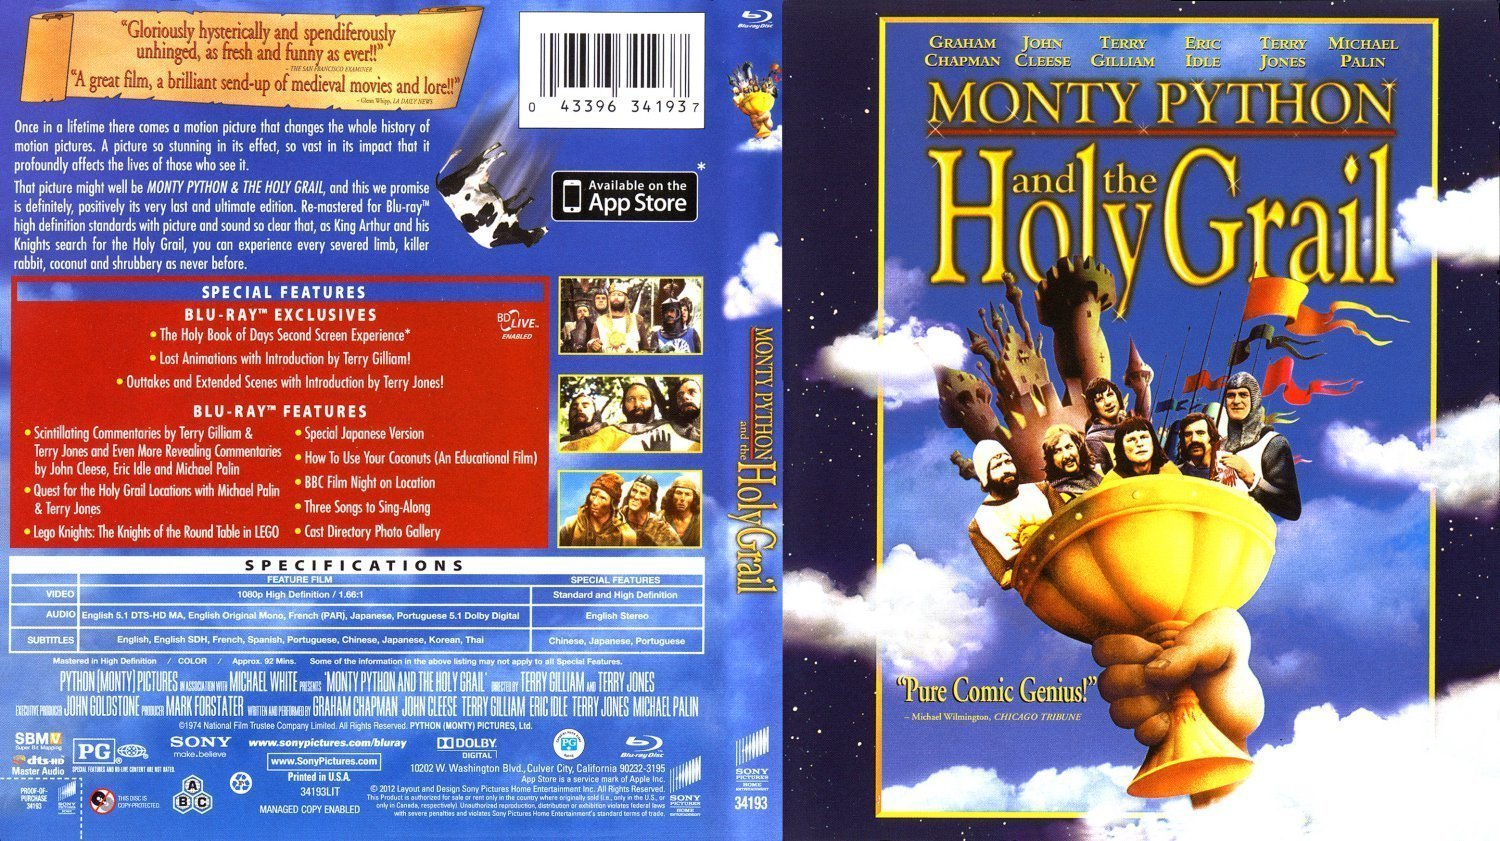 an analysis of humor in monty python and the holy grail a film by terry jones and terry gilliam